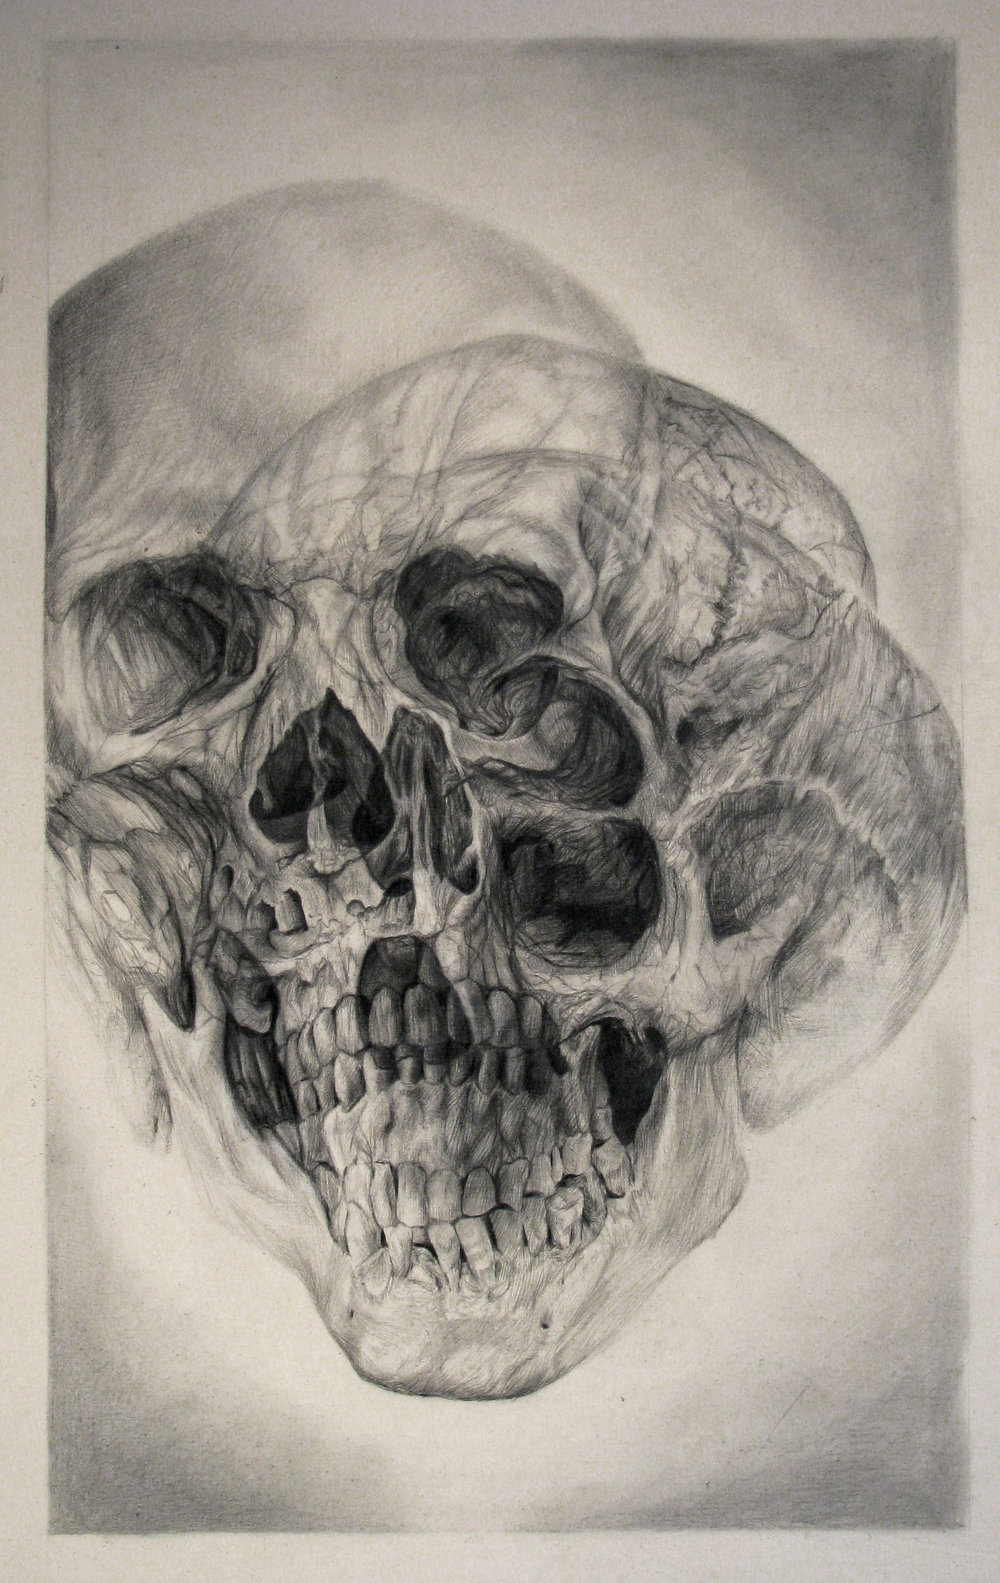 Golden Means (Skull Spiral) 36x25in. graphite on canvas.jpg